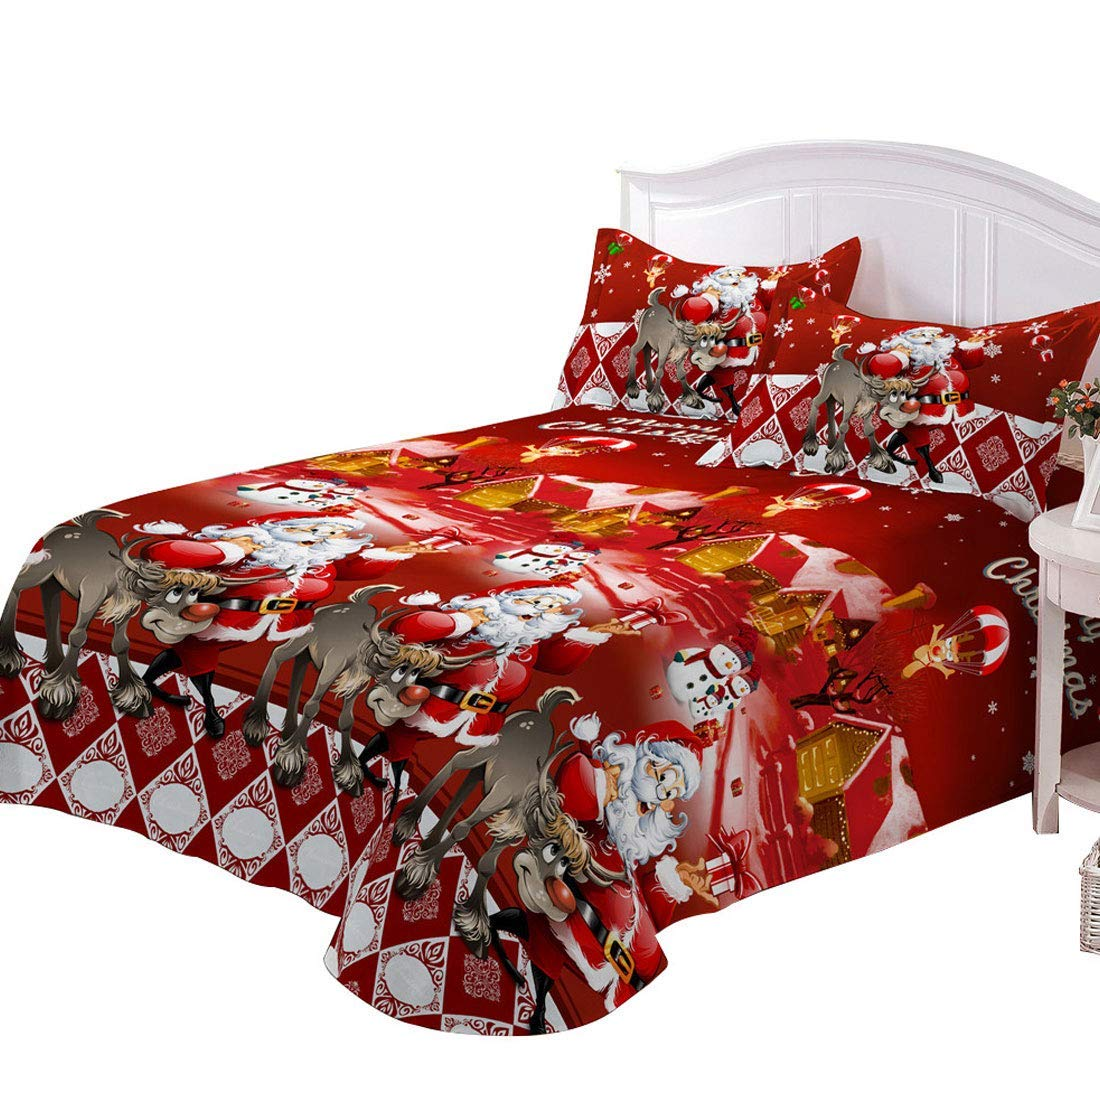 Christmas Sheets.Best Christmas Sheets Queen Size Top 21 Picks For 2019